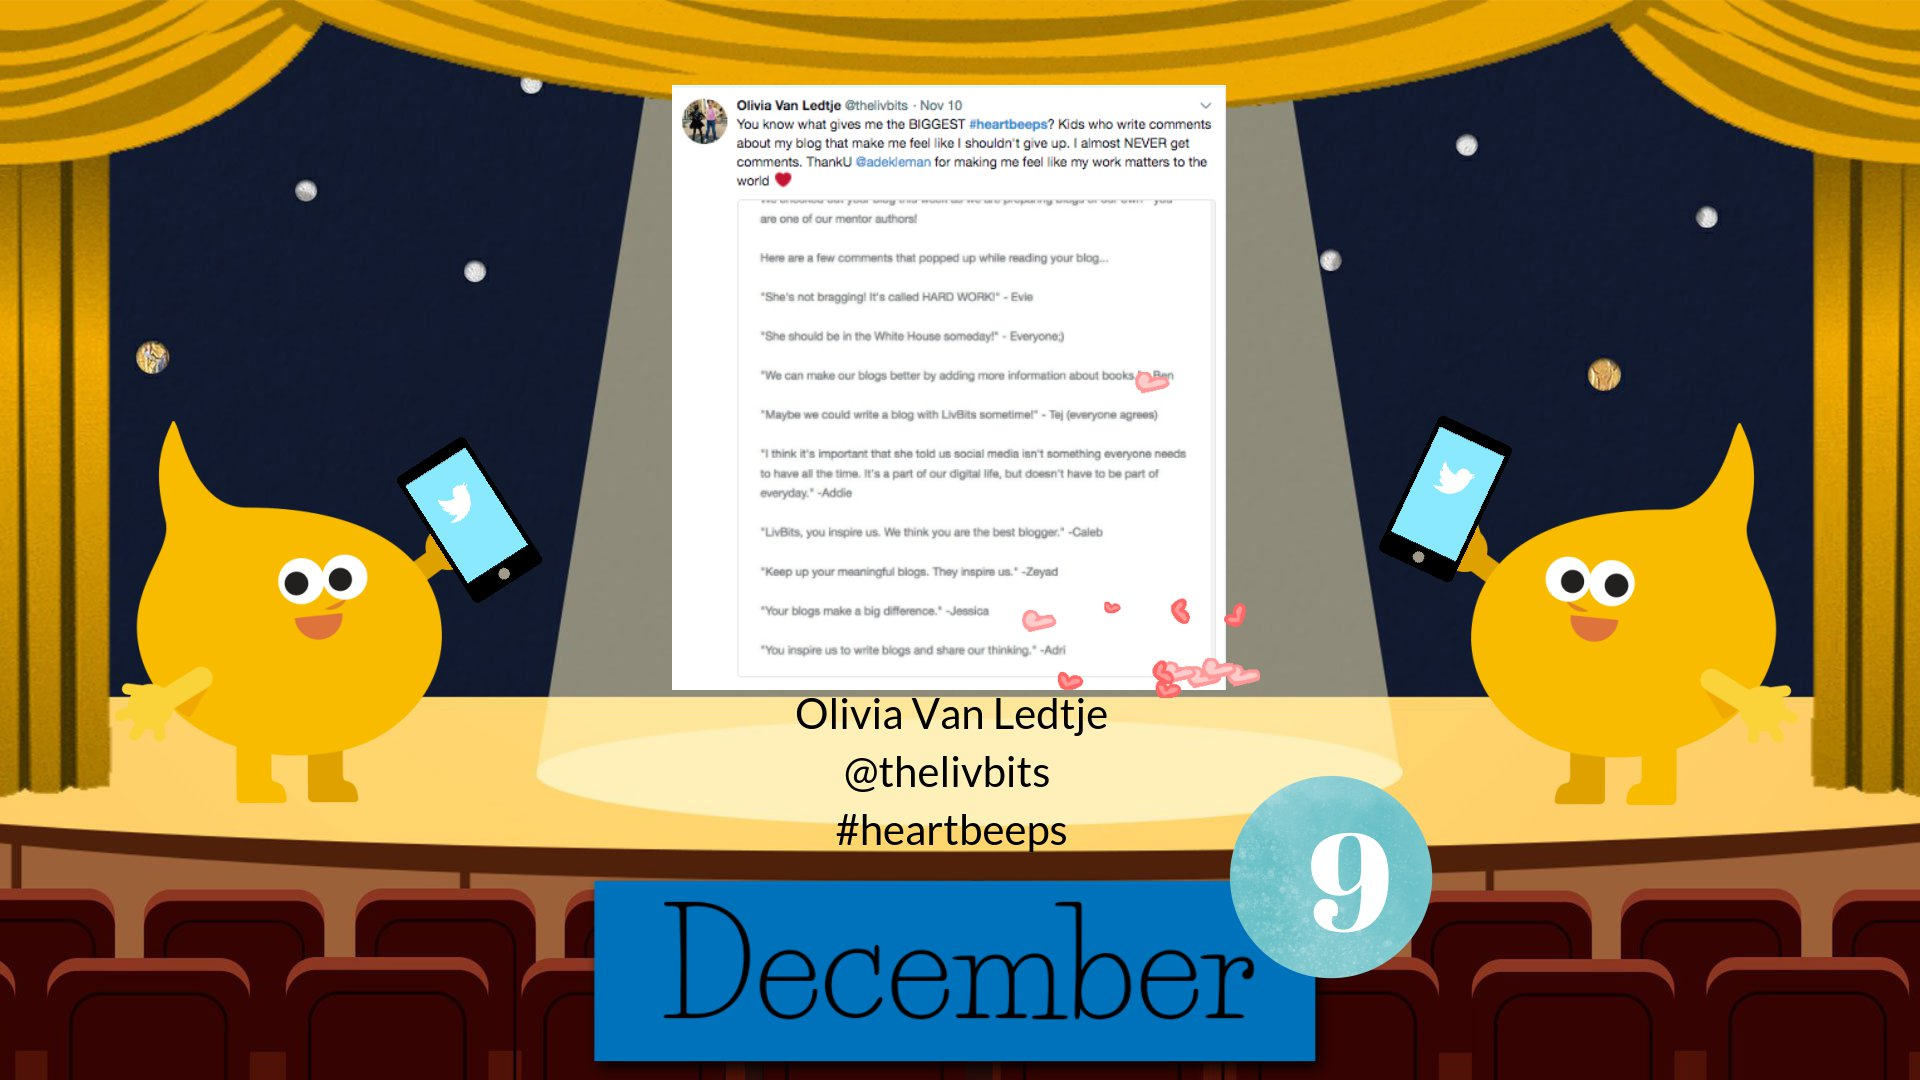 Buncee - DigCitKids Approved 12-9 Shoutout